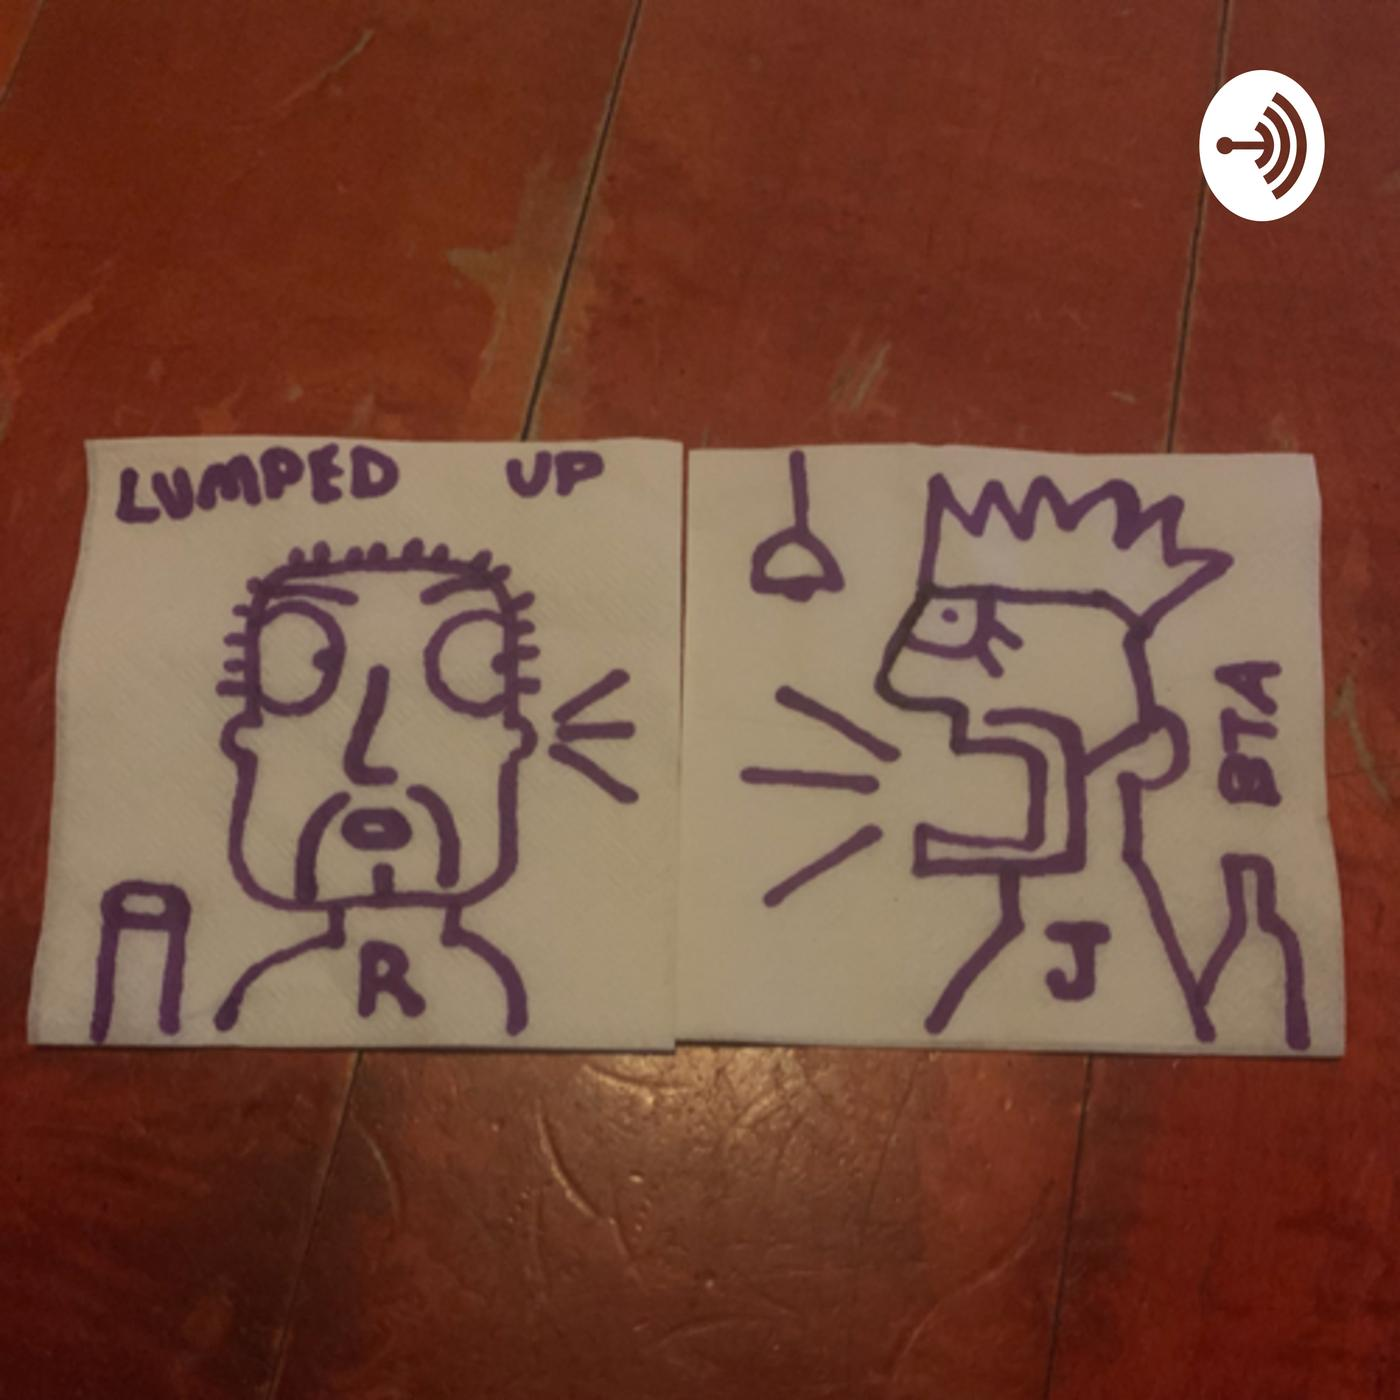 Getting lumped up with Rob Rossi (podcast) - Getting lumped up with